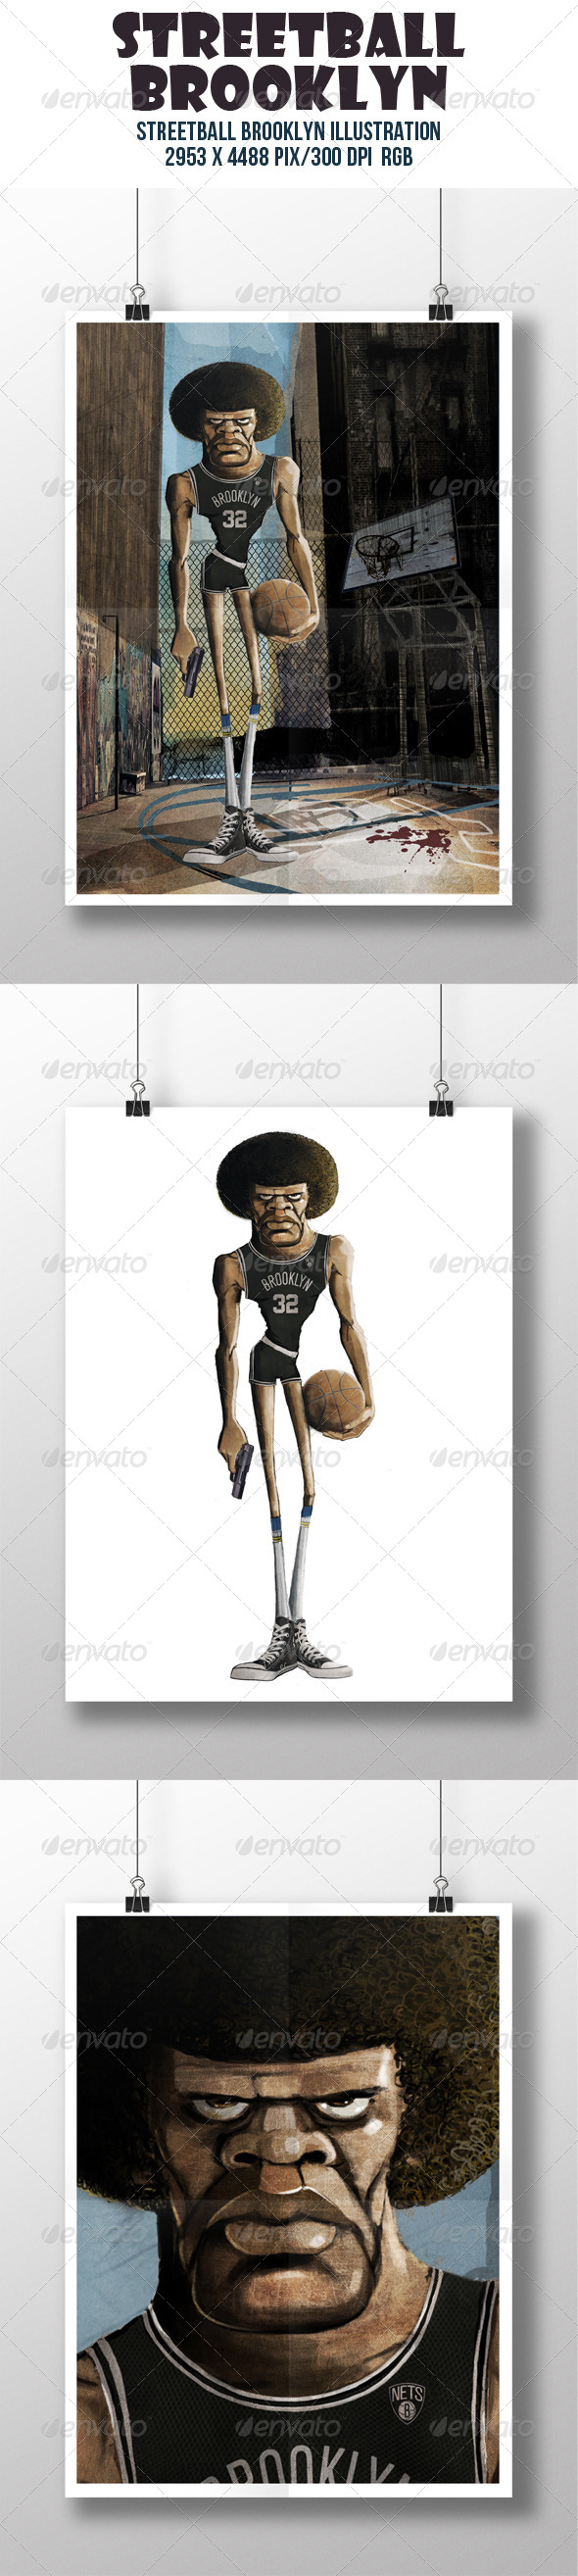 GraphicRiver Streetball Brooklyn Illustration 8019098